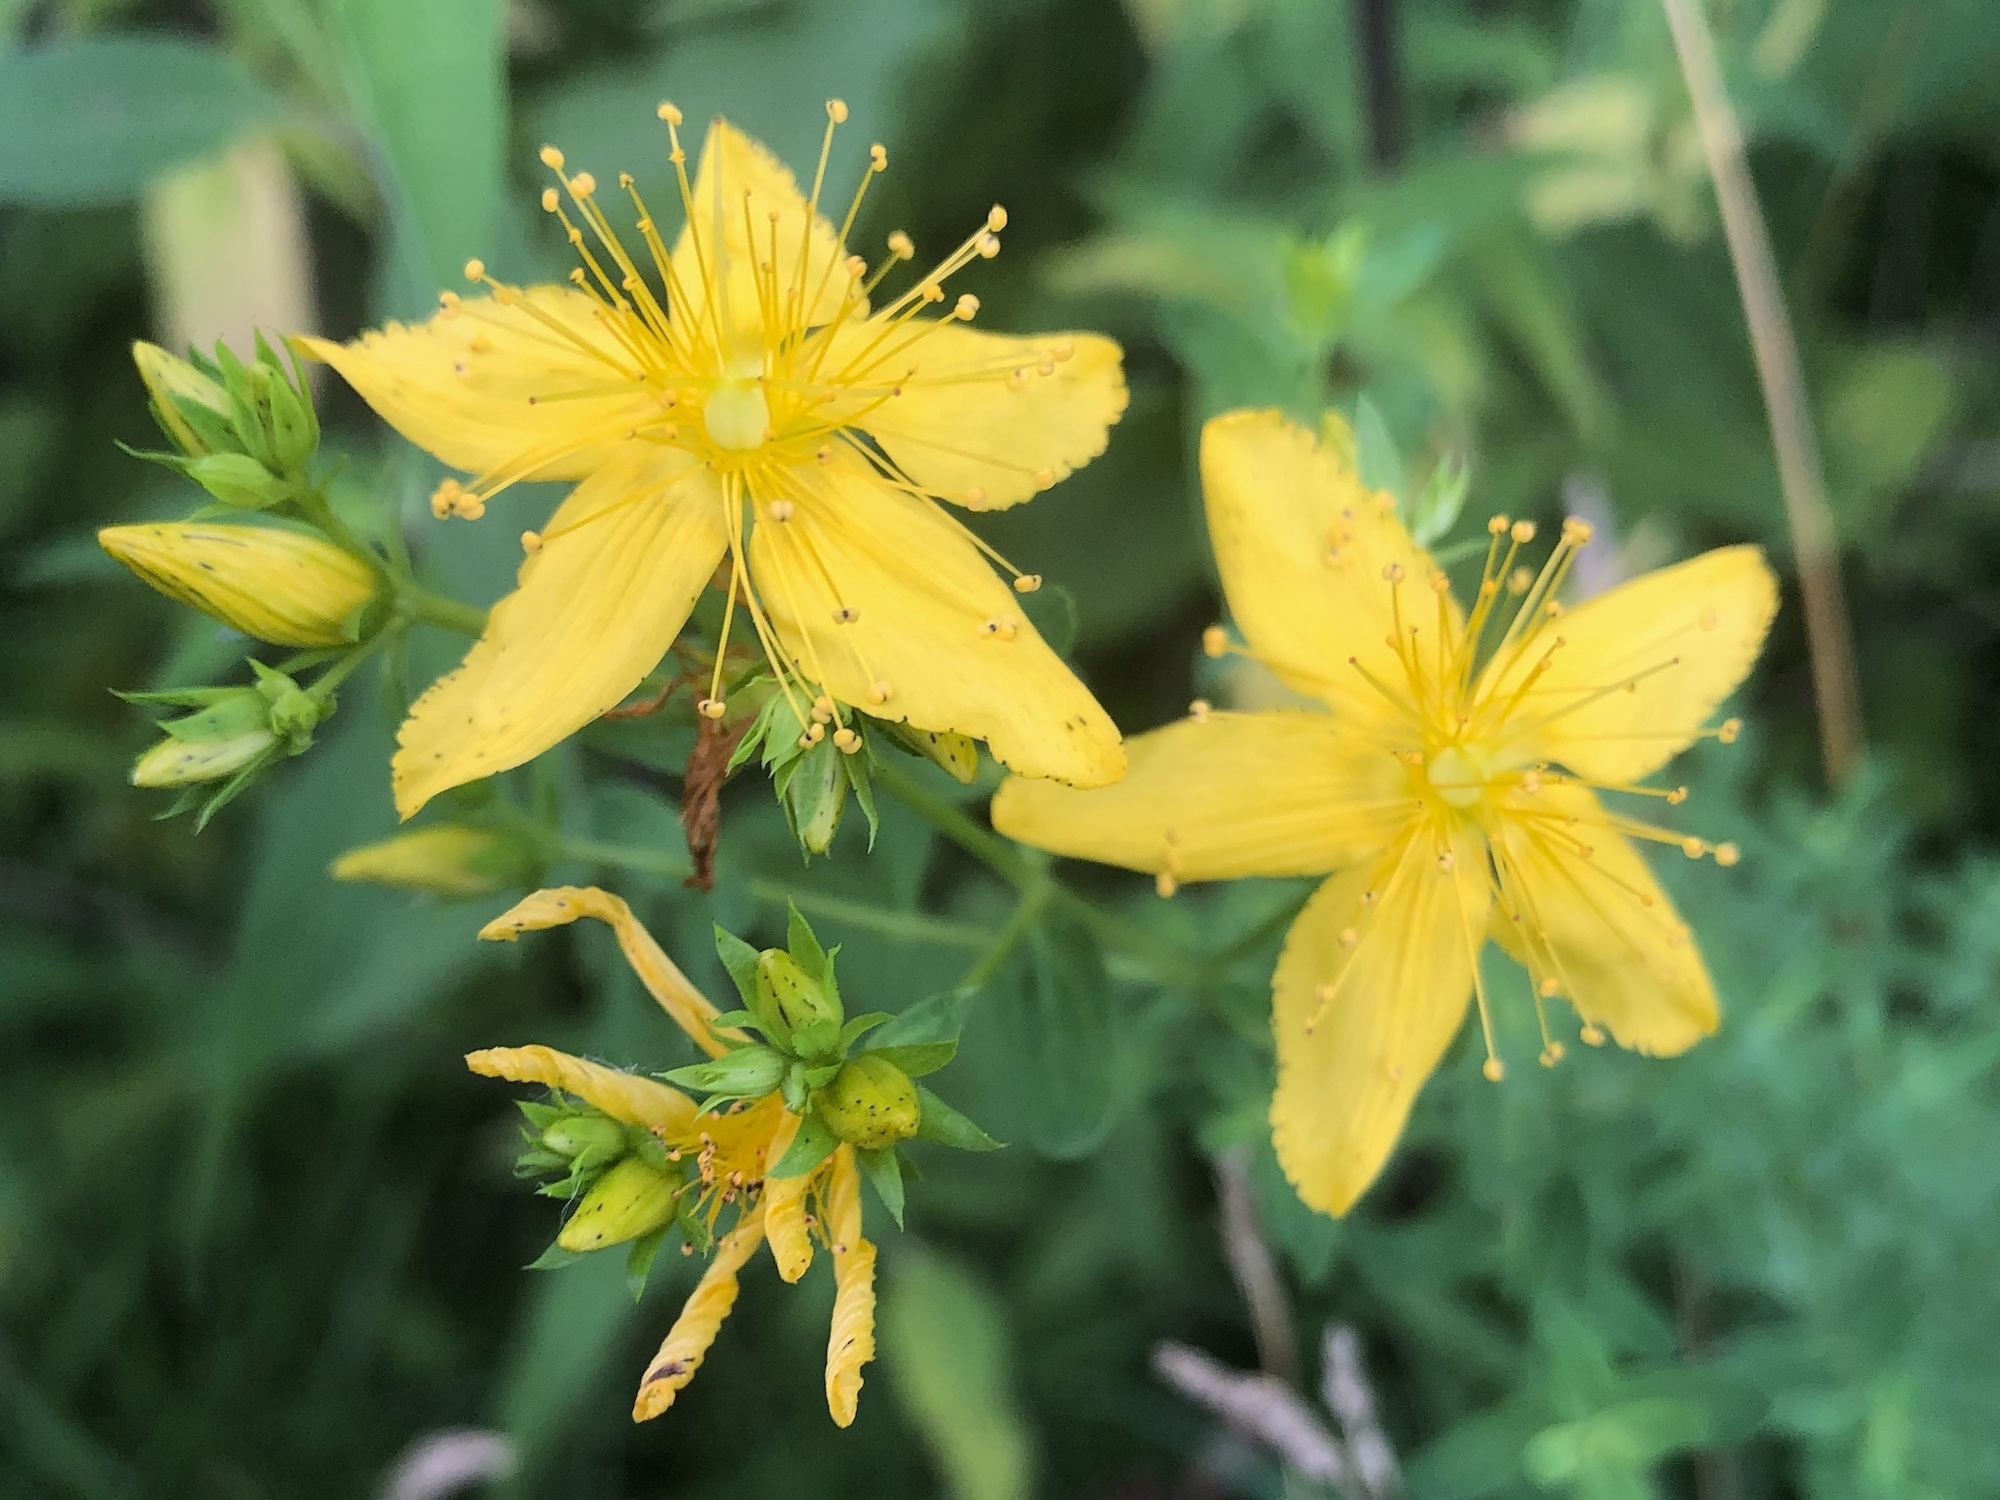 St. John's Wort on bank of Marion Dunn Pond on June 28, 2020.